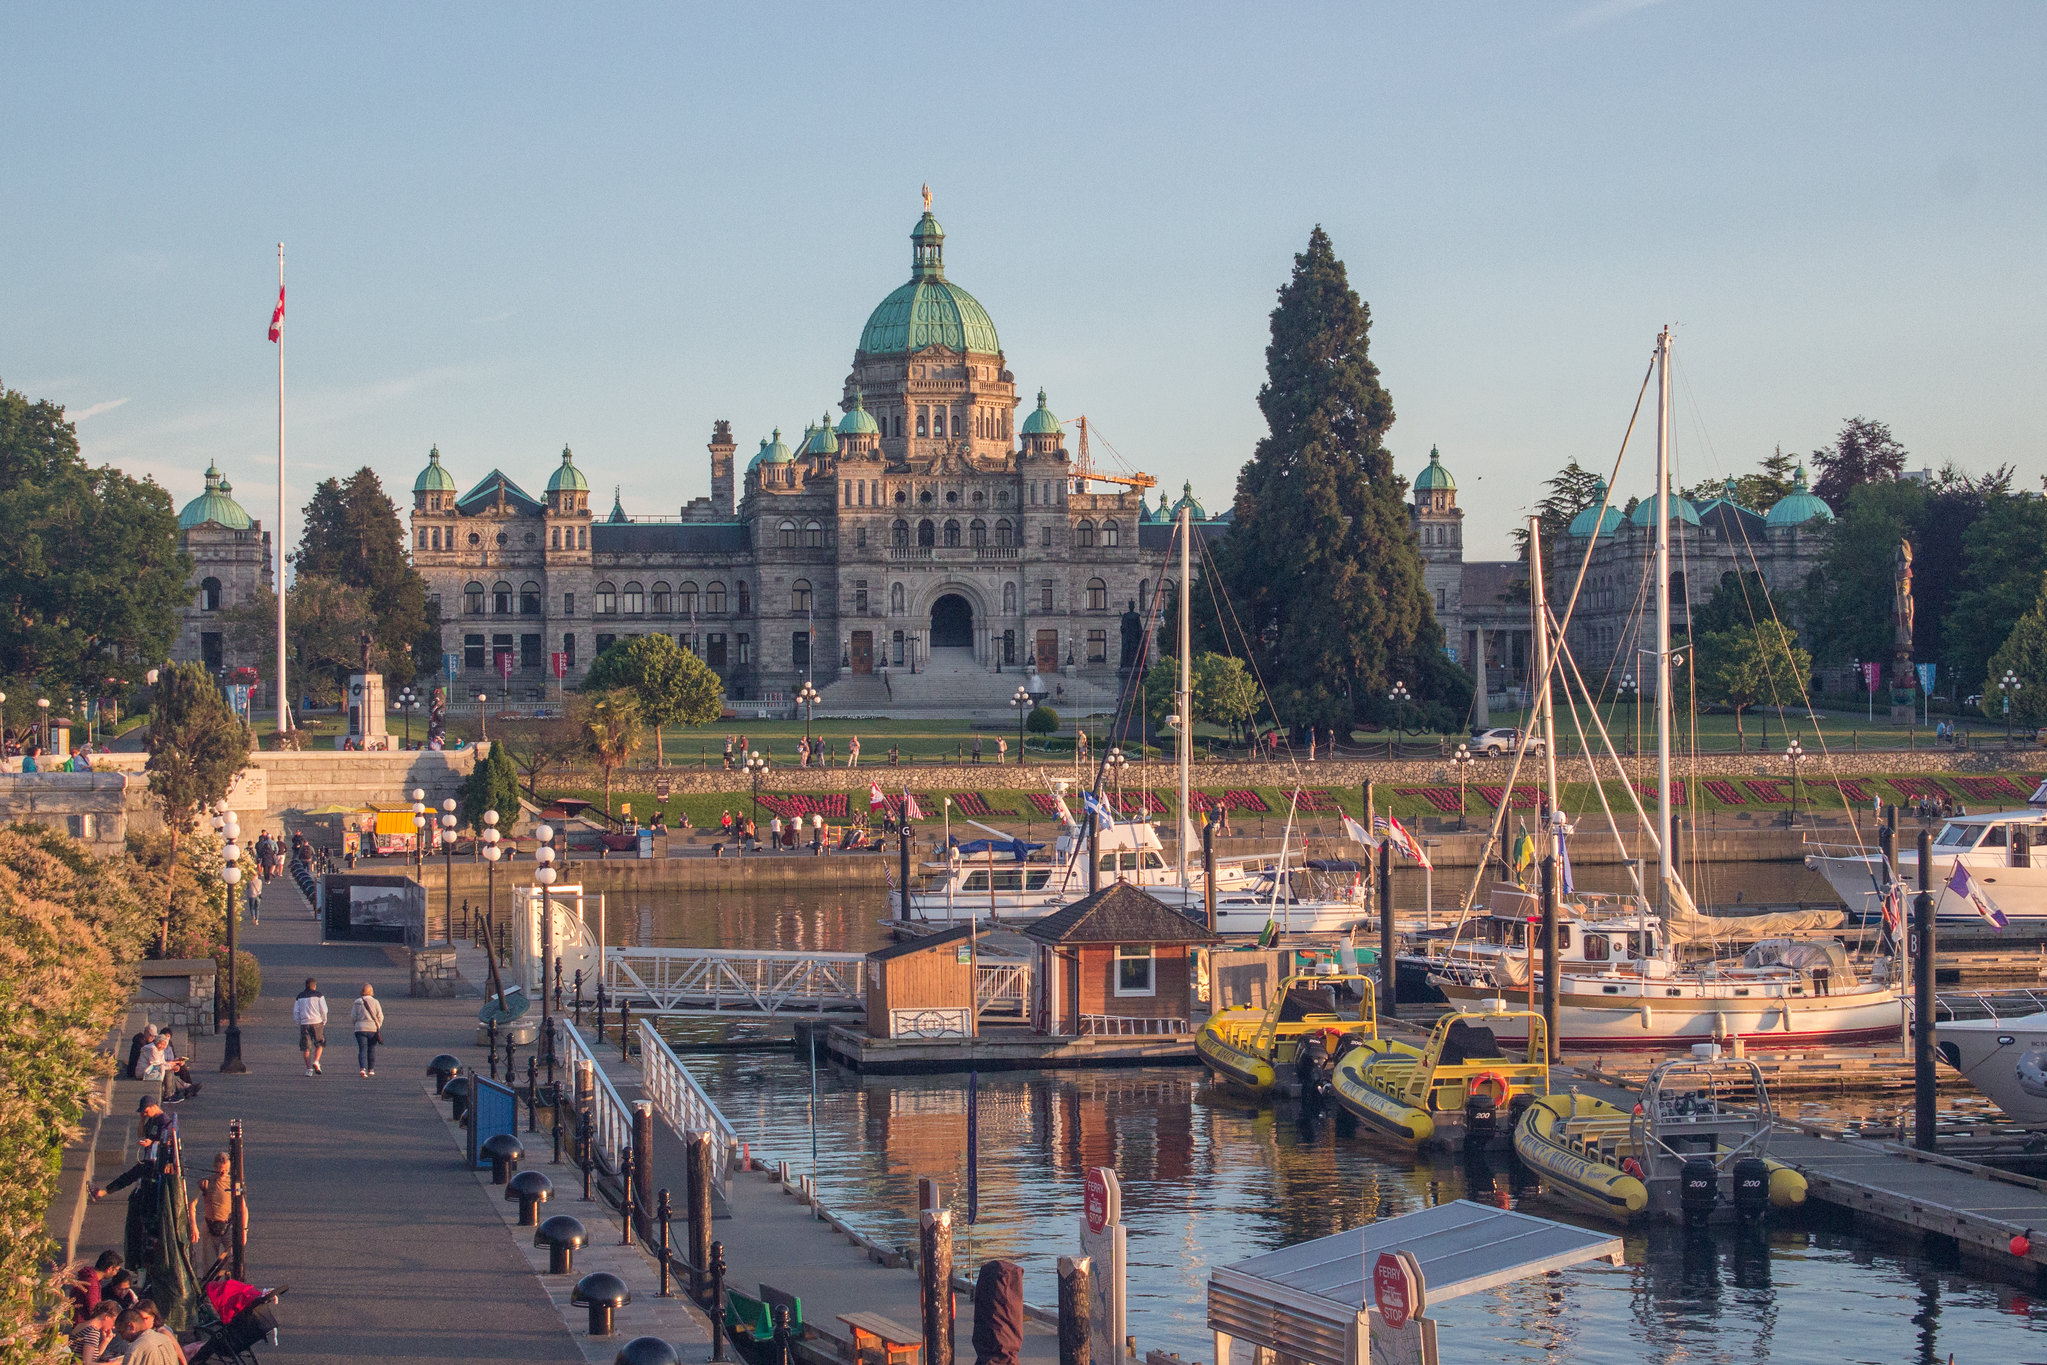 One day in Victoria, BC – exploring British Columbia's capital city